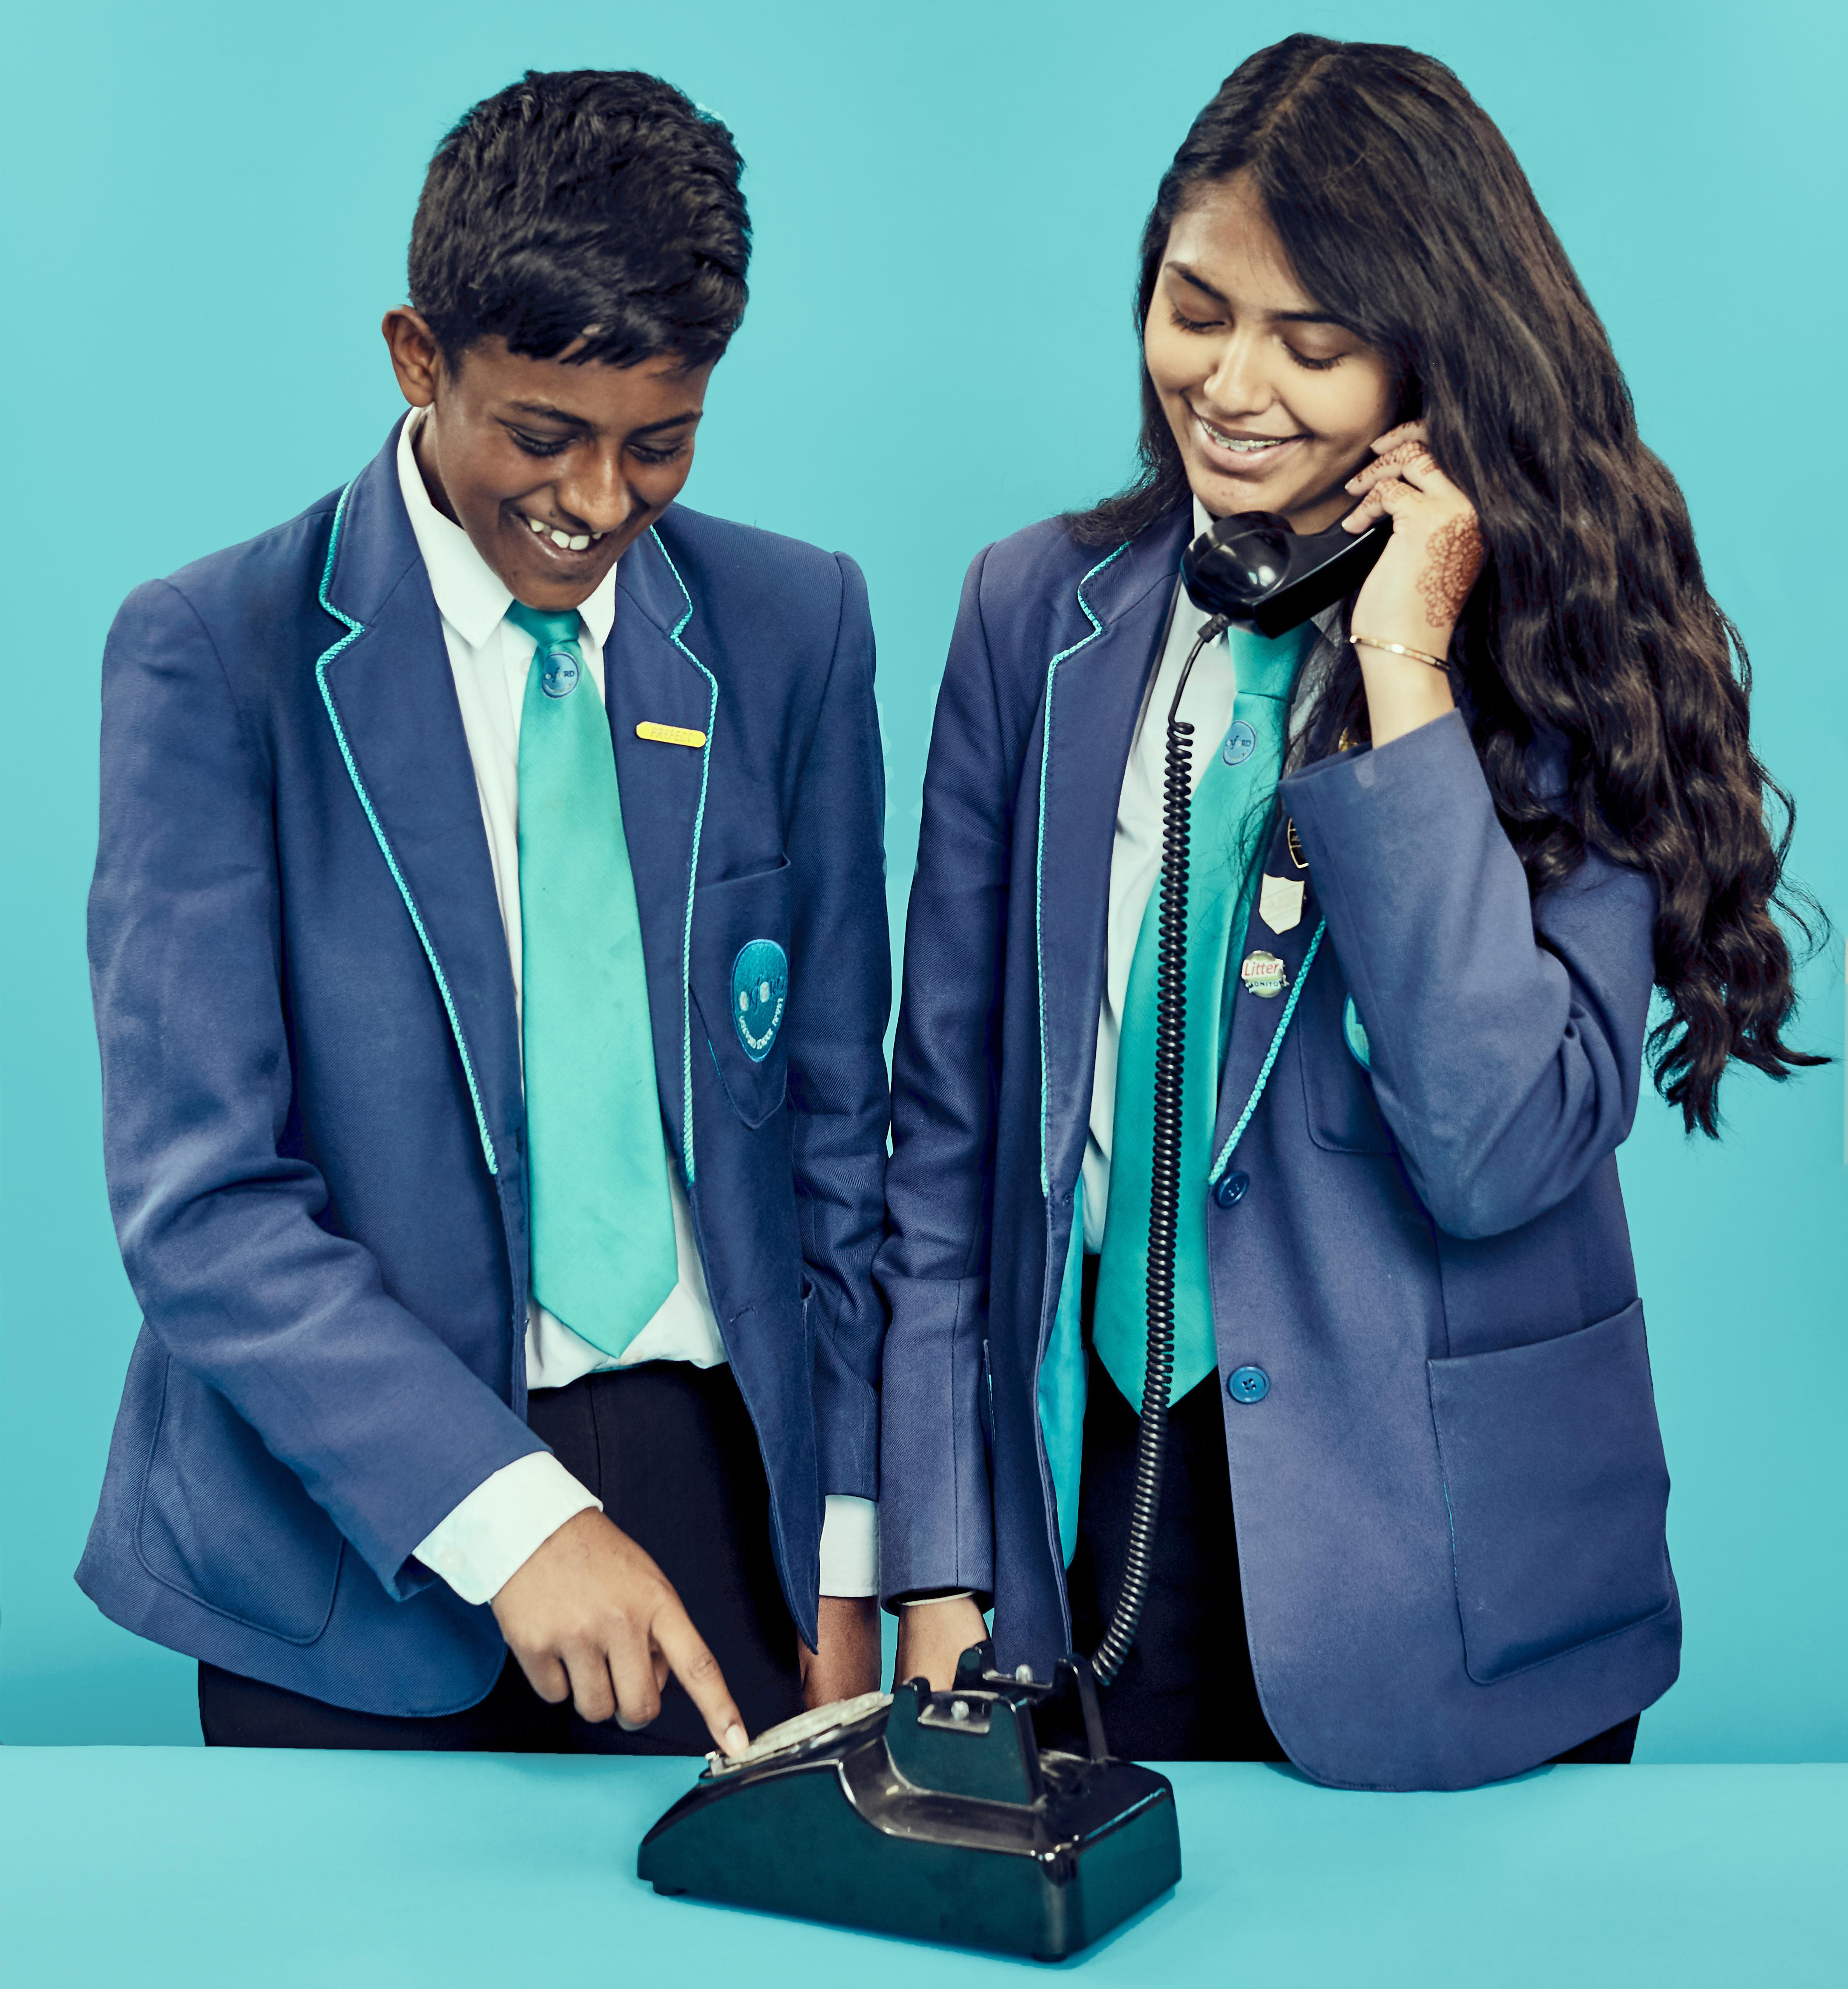 'Do you wind it up?': today's teens tackle rotary phones, FM radio and map reading